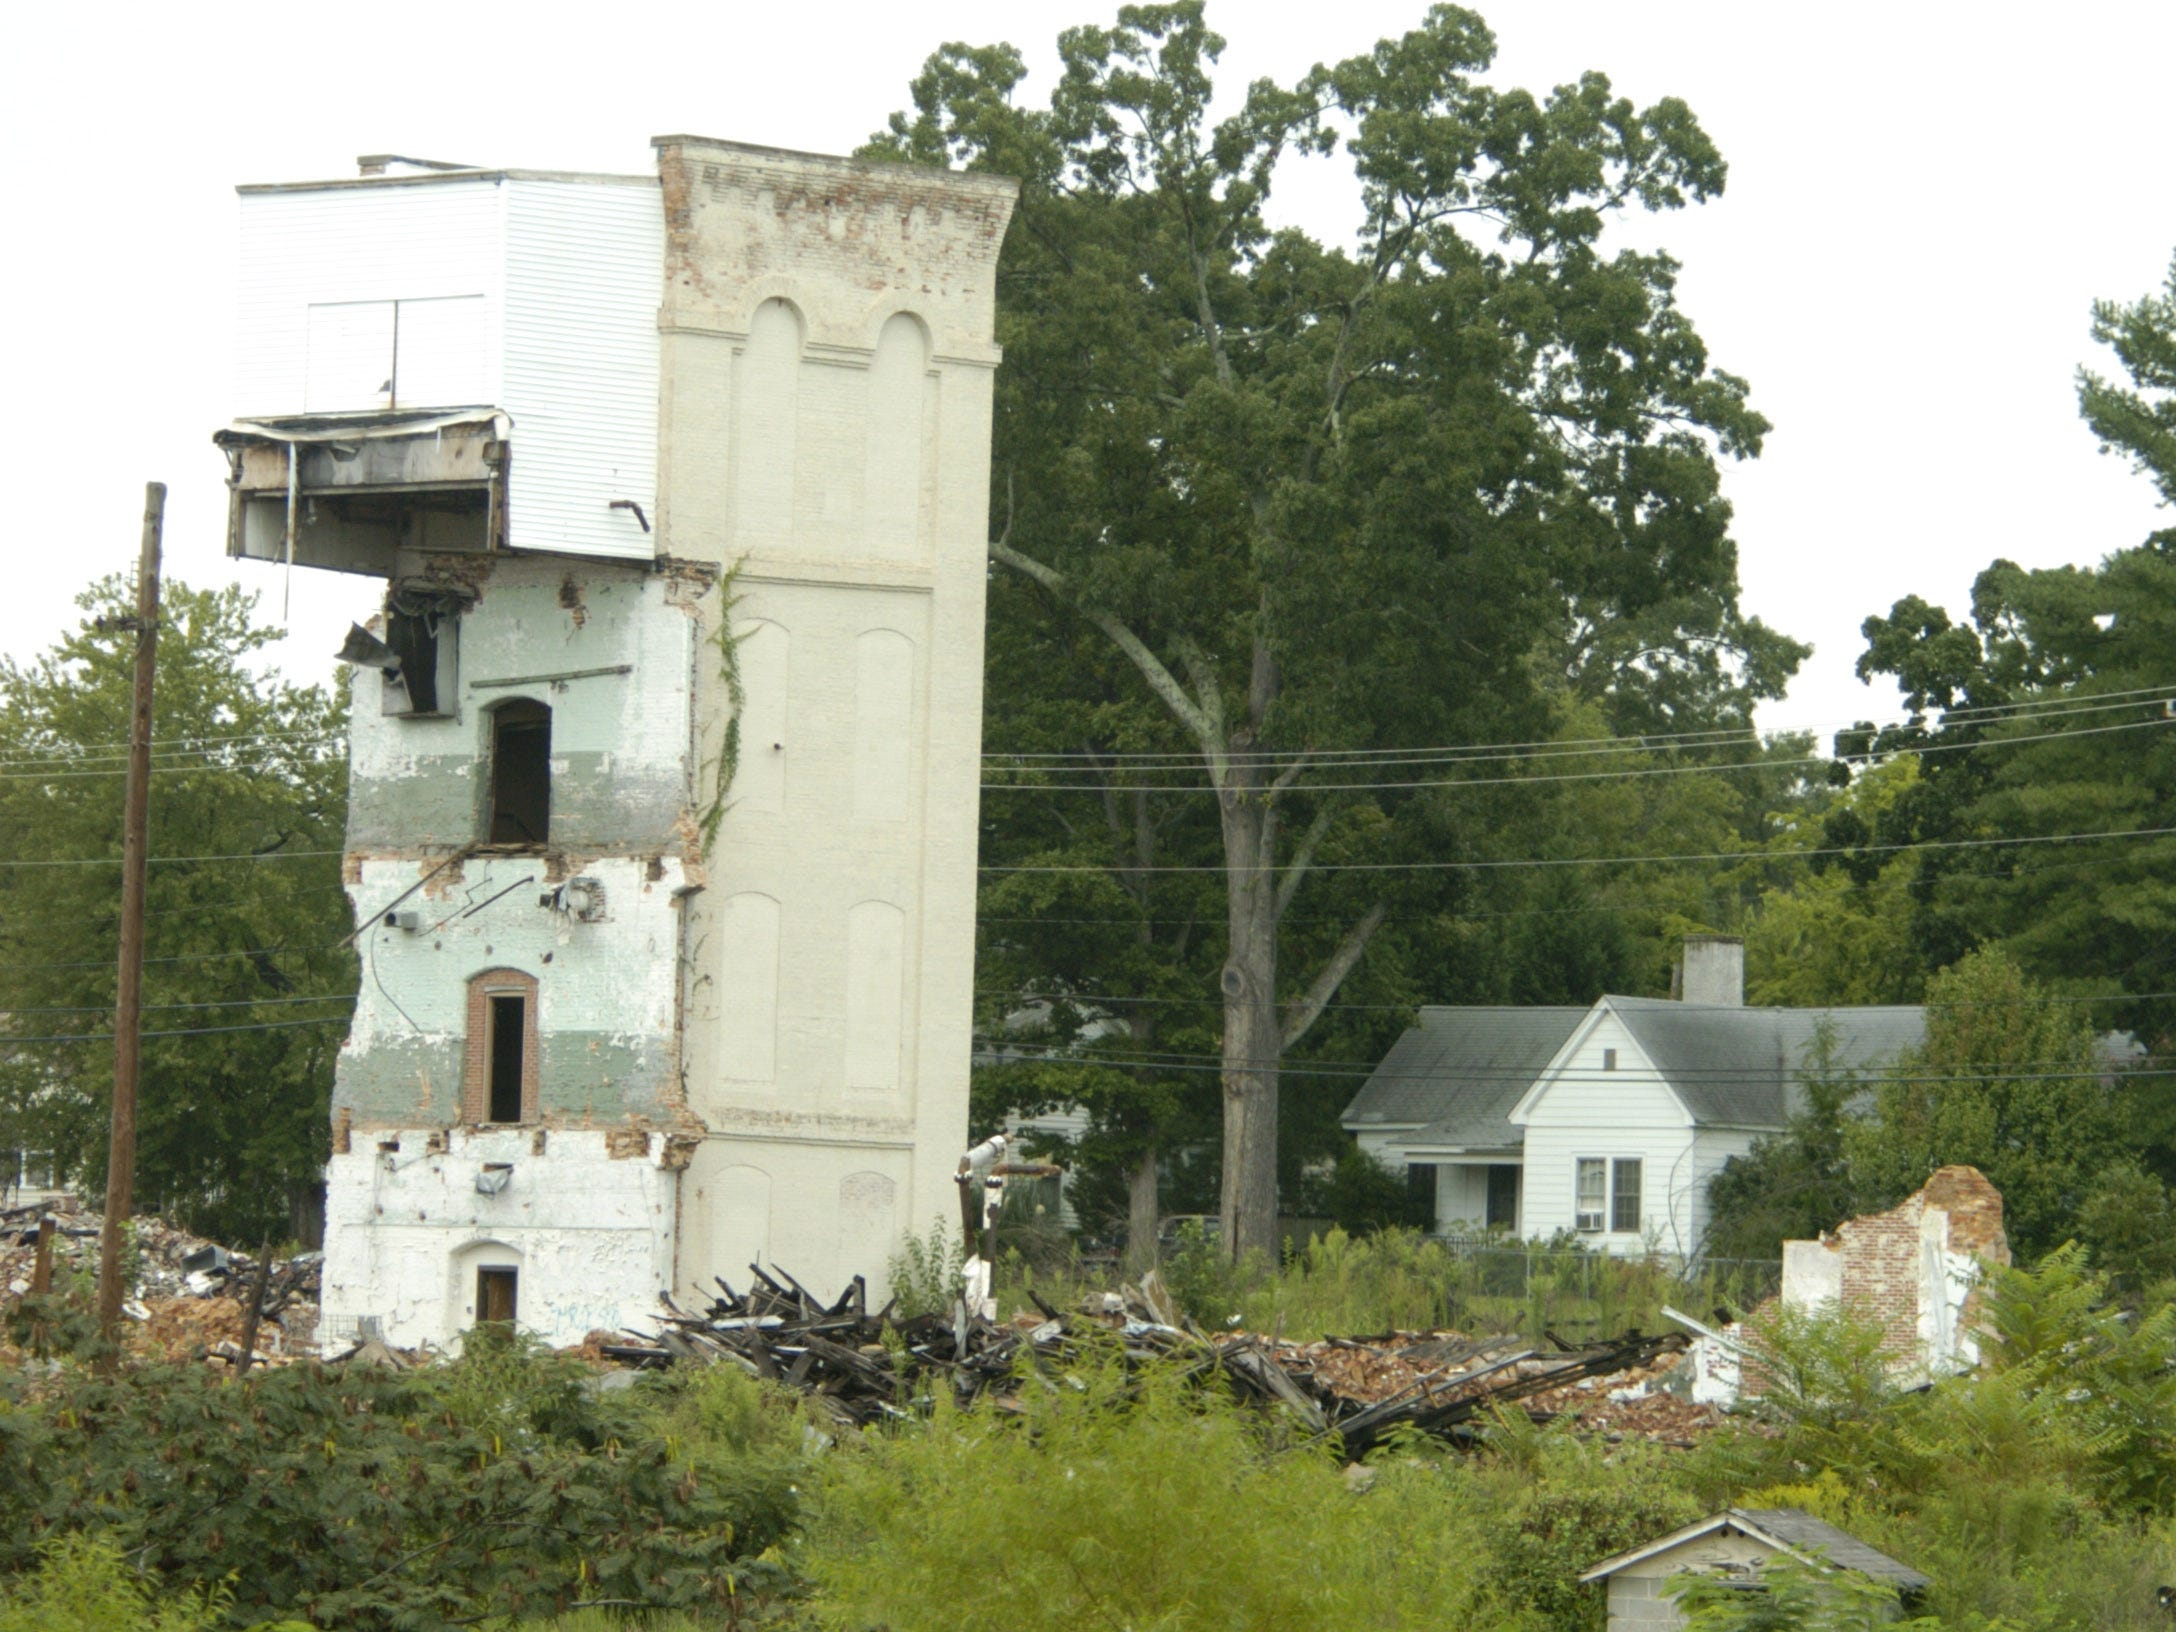 Houses on Victor Ave. in Greer, SCX, look over the remains on Victor Mill in this archive photo from September 2006.